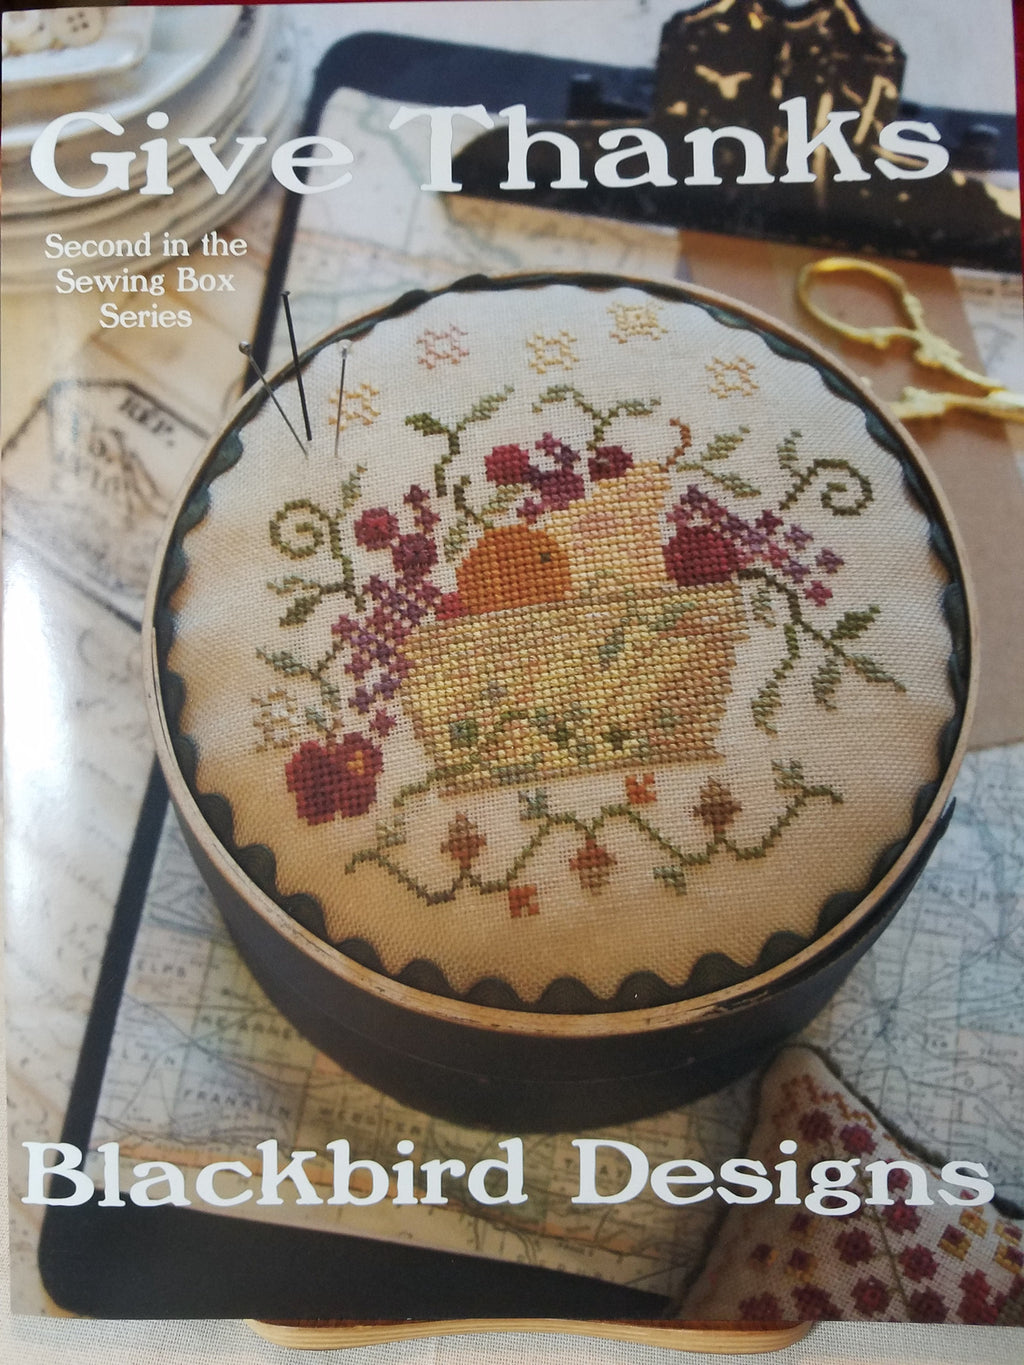 Give Thanks (Sewing Box Series) - Cross Stitch Pattern by Blackbird Designs